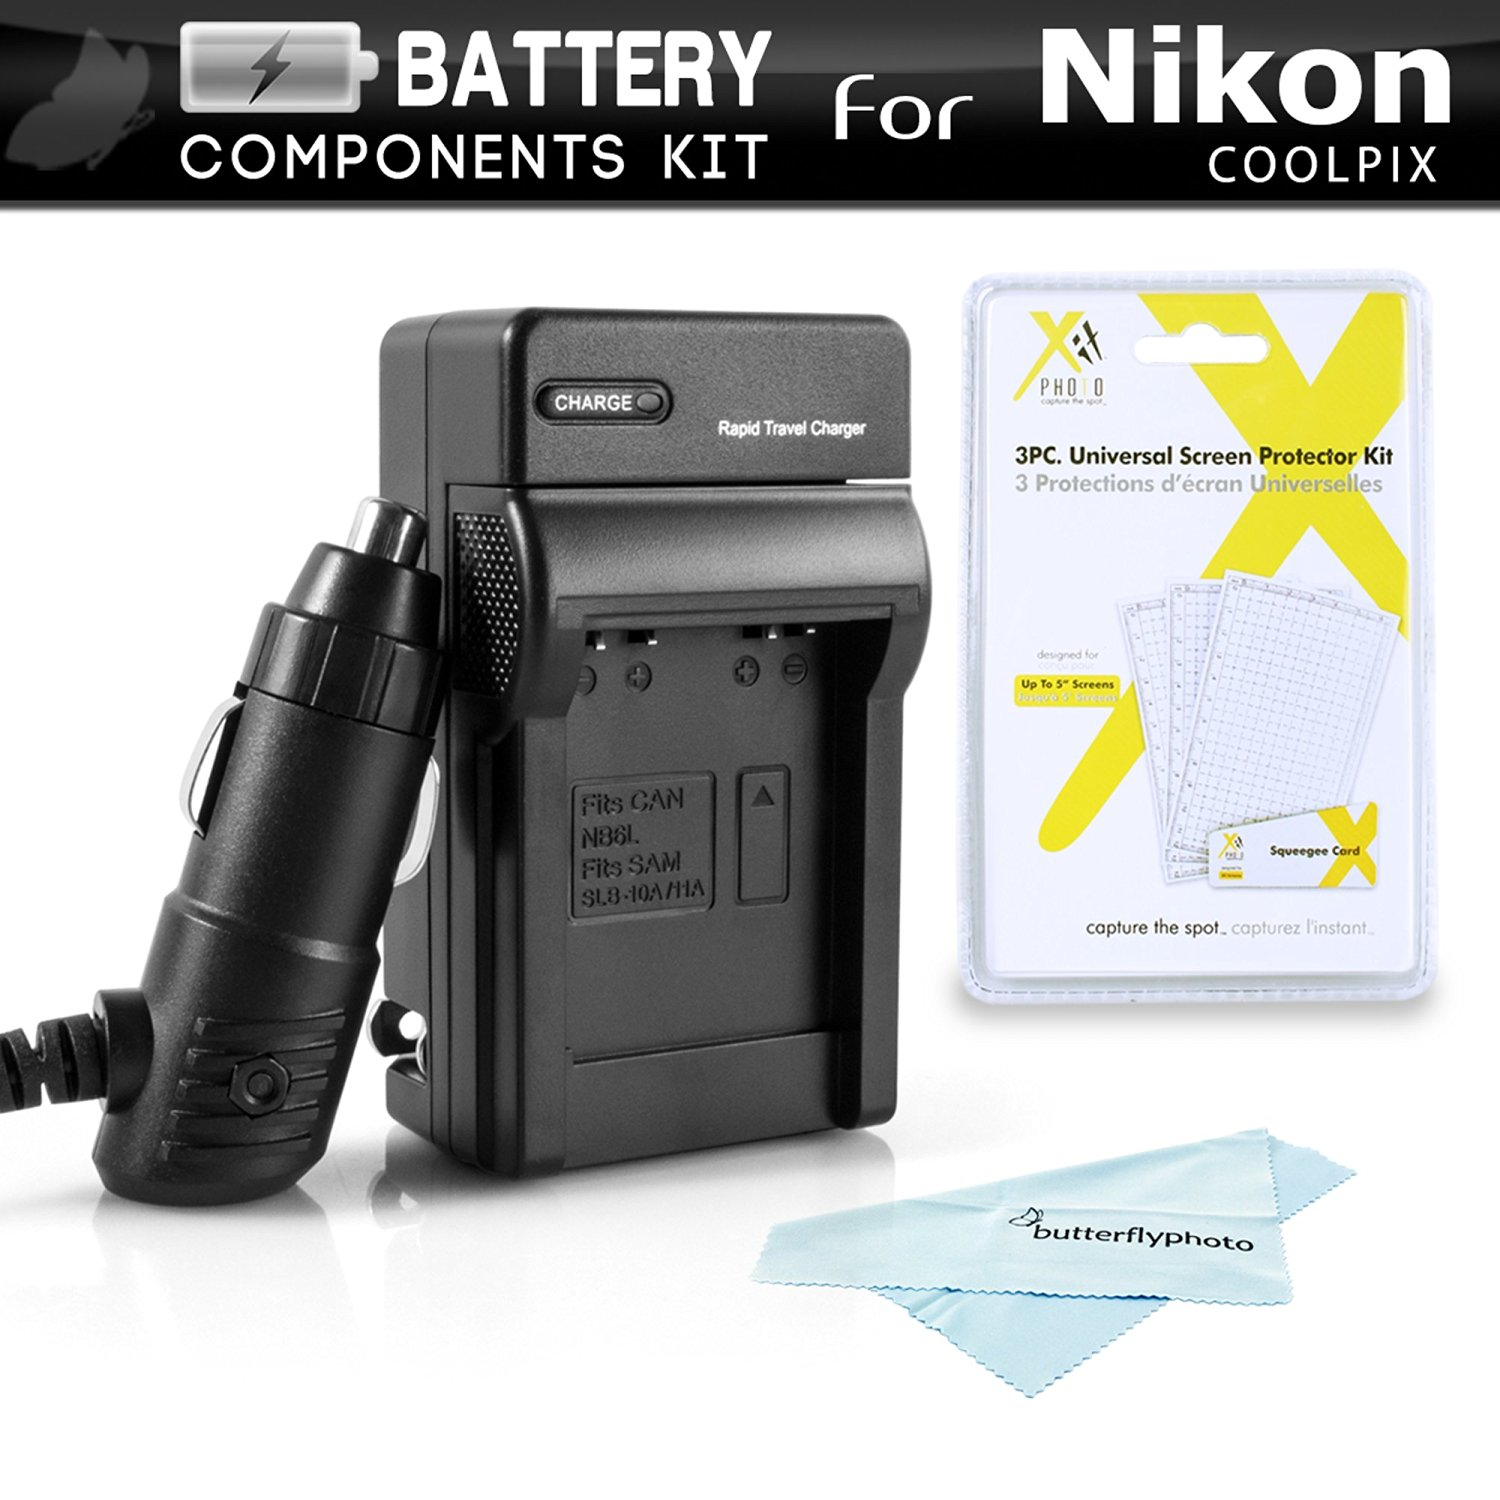 Battery Charger Kit For Nikon COOLPIX B700, P900, P610, P600 16.1 MP Wi-Fi Digital Camera Includes Ac/Dc 110/220 Rapid Travel Charger For Nikon EN-EL23 Battery + Screen Protectors + MicroFiber Cloth